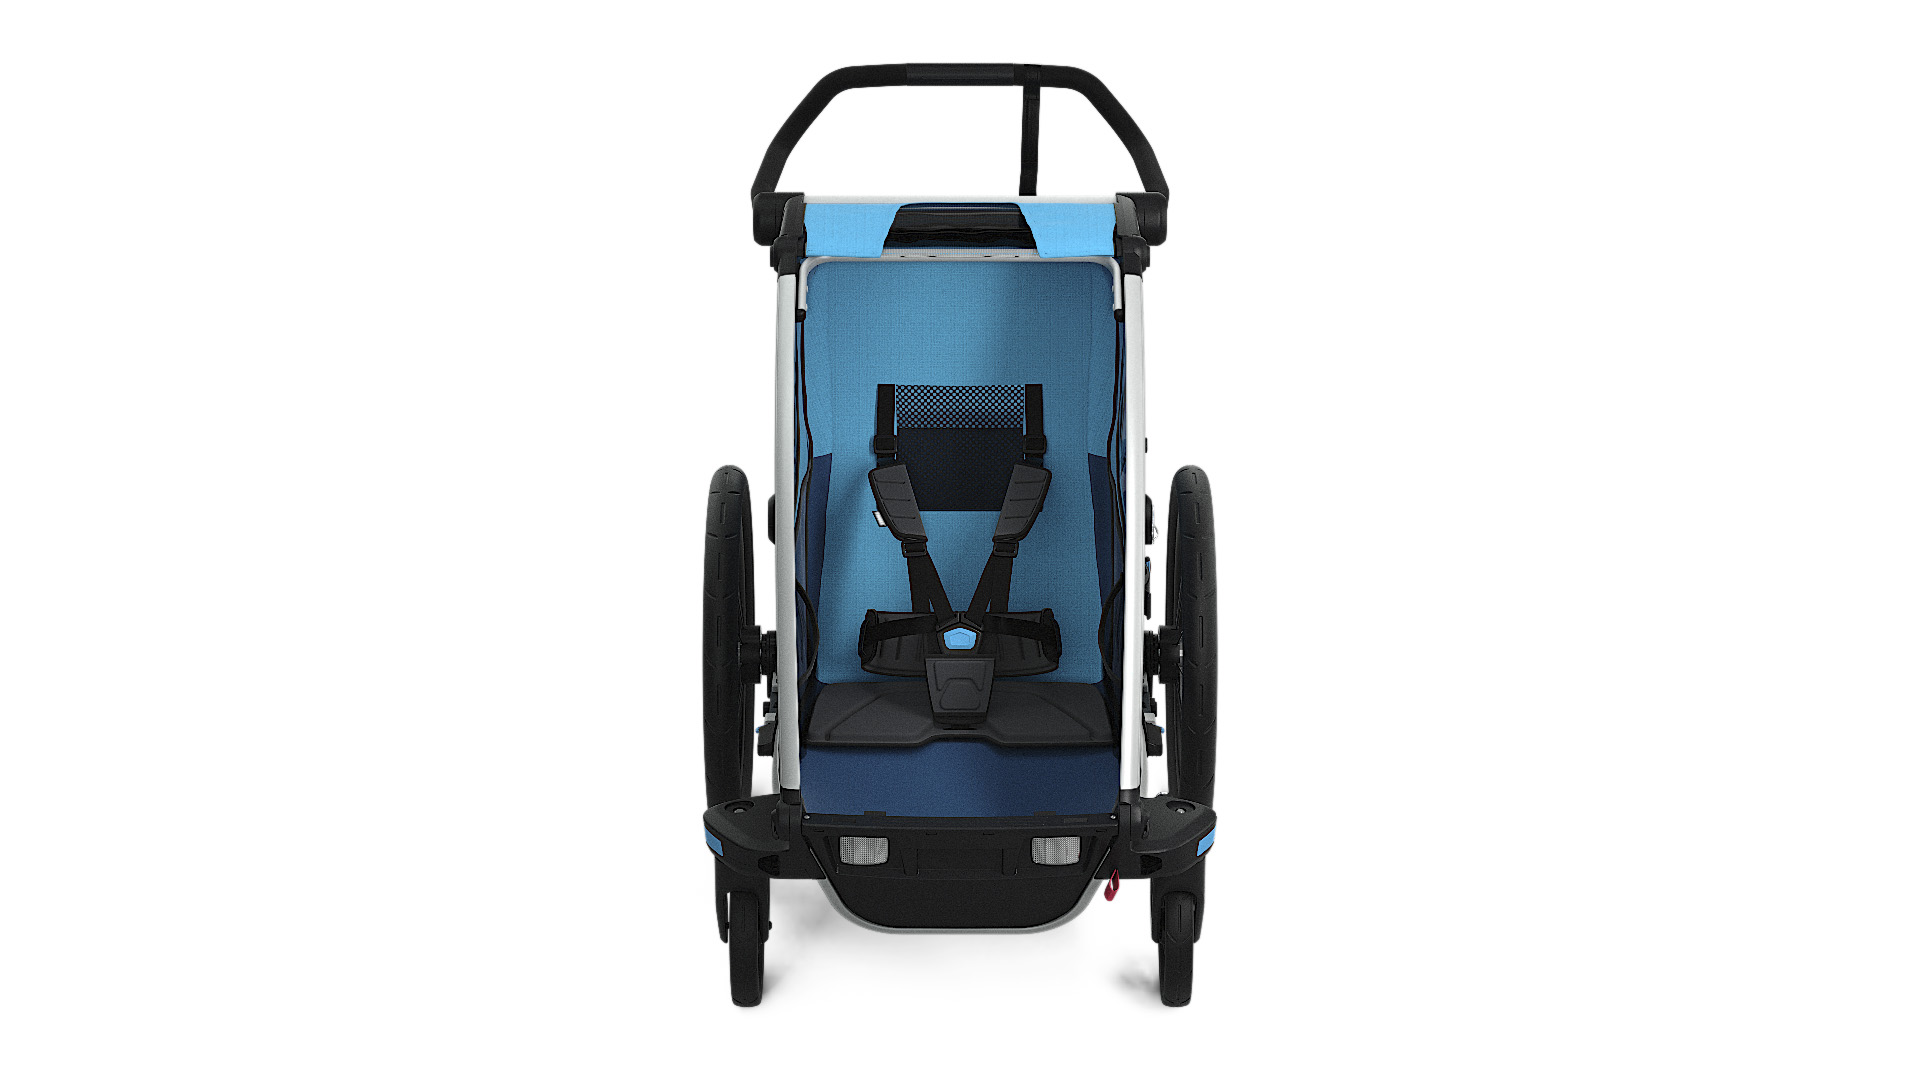 Thule_Chariot_Cross1_ThuleBlue_Strolling_FRONT_10202001